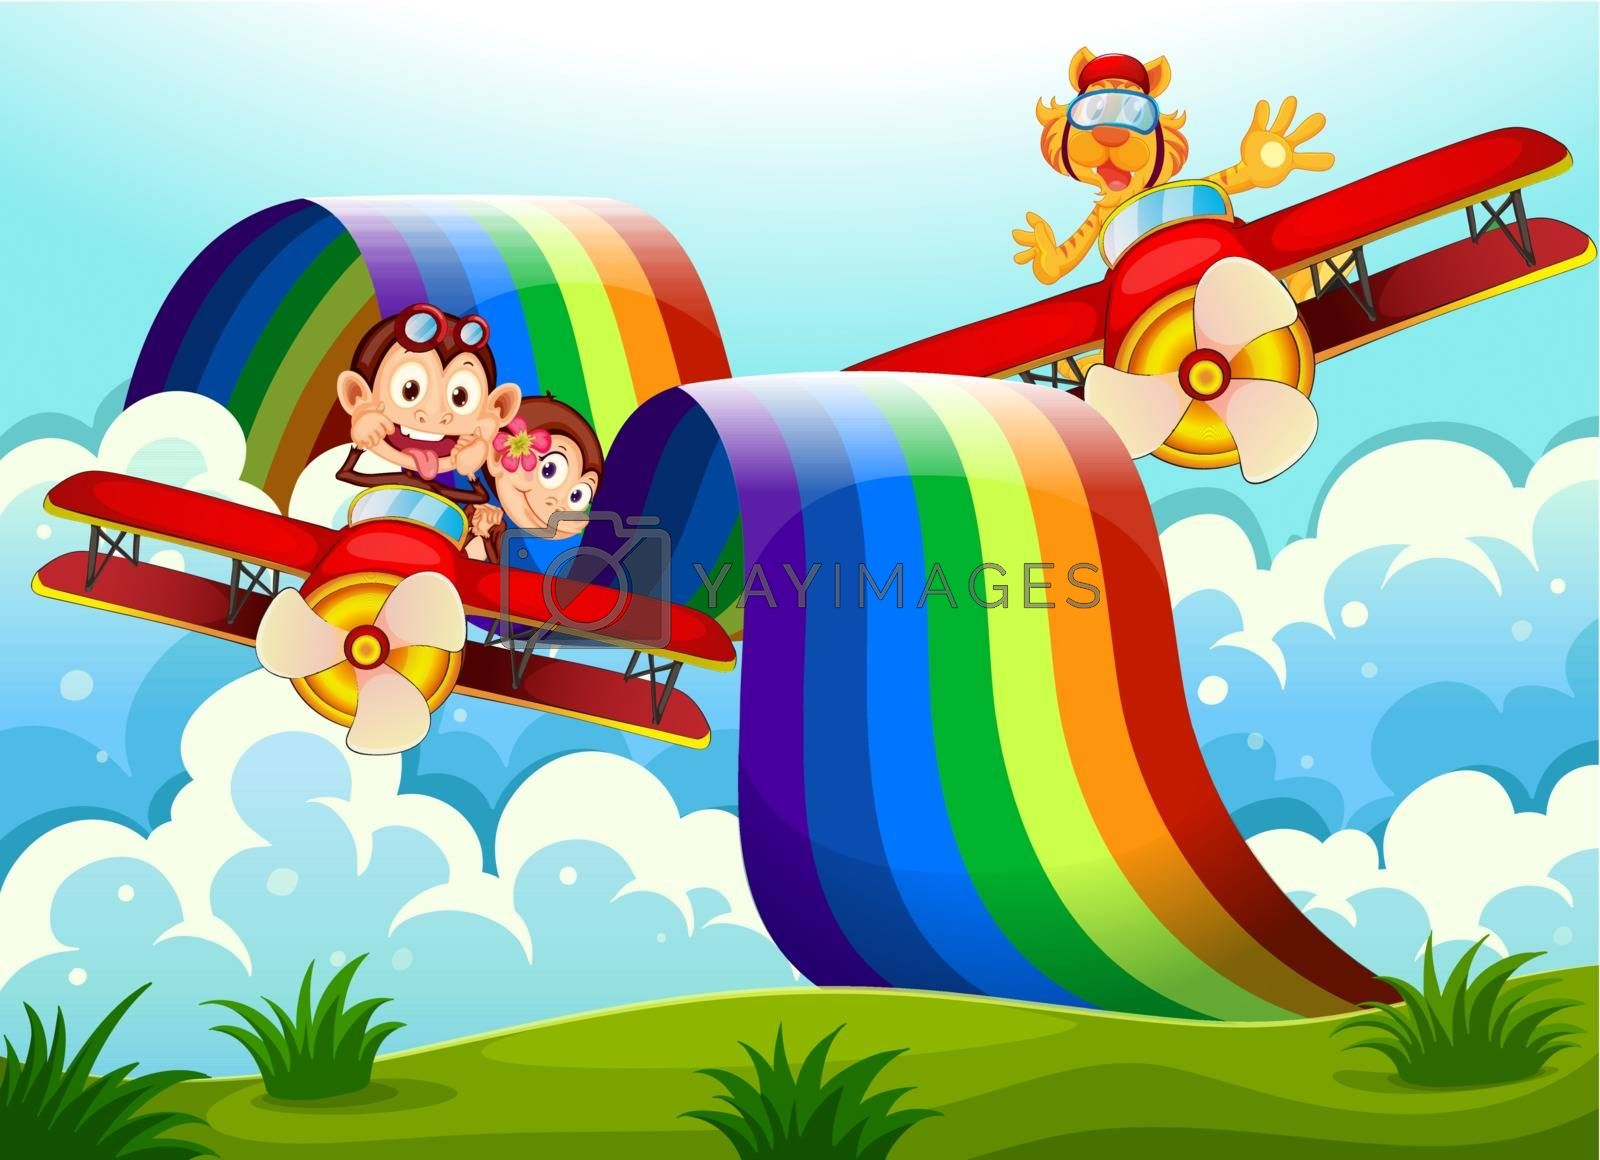 Illustration of the playful animals near the rainbow above the hills